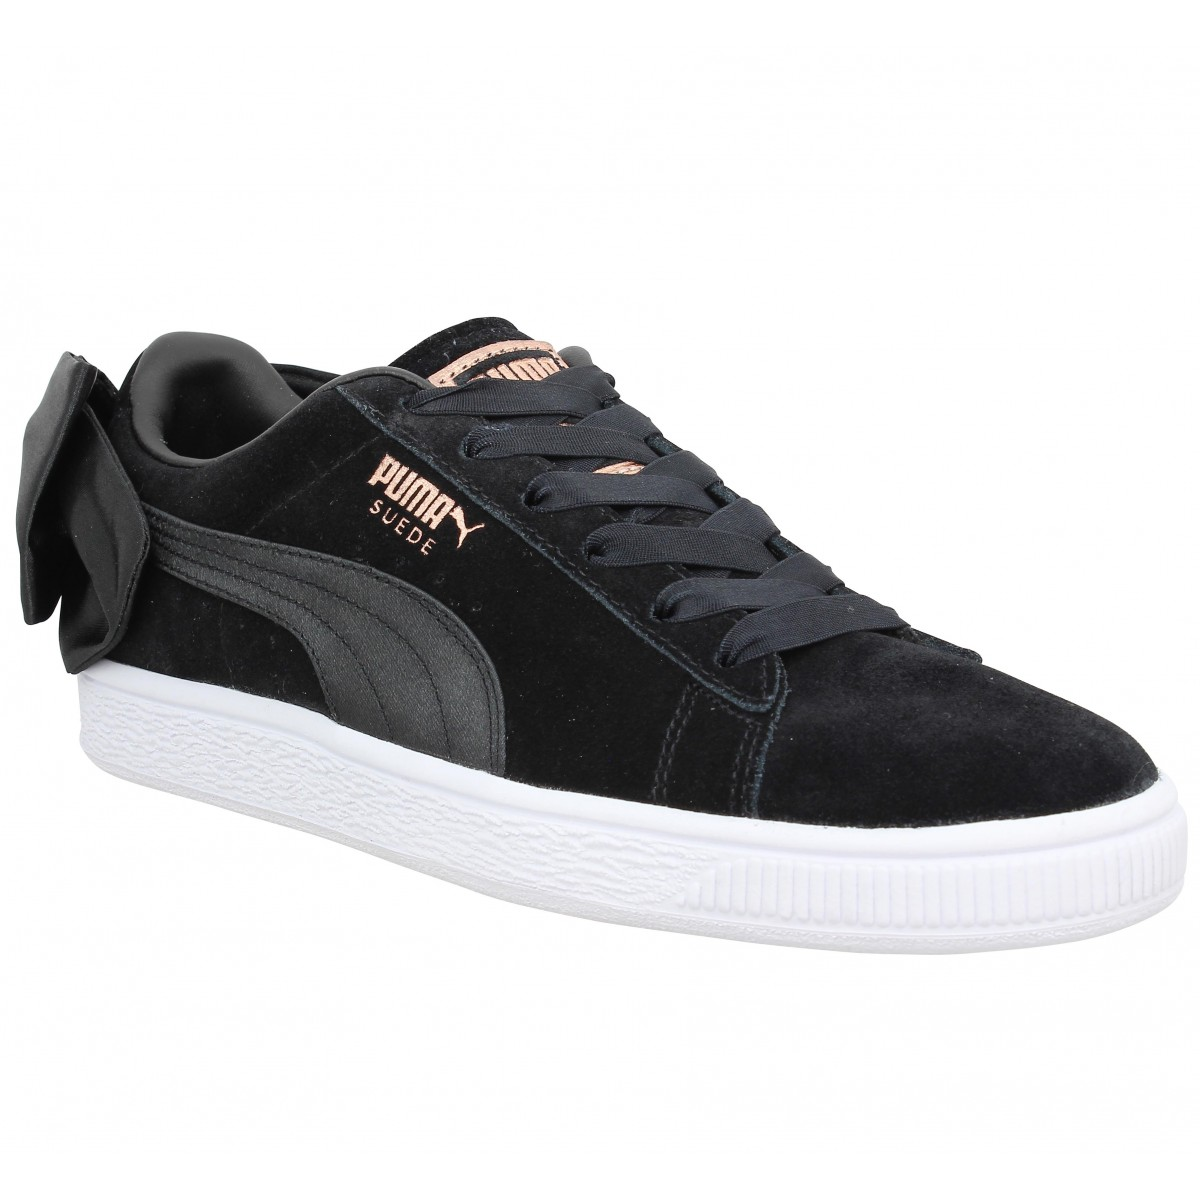 Baskets Suede Bow, Noir